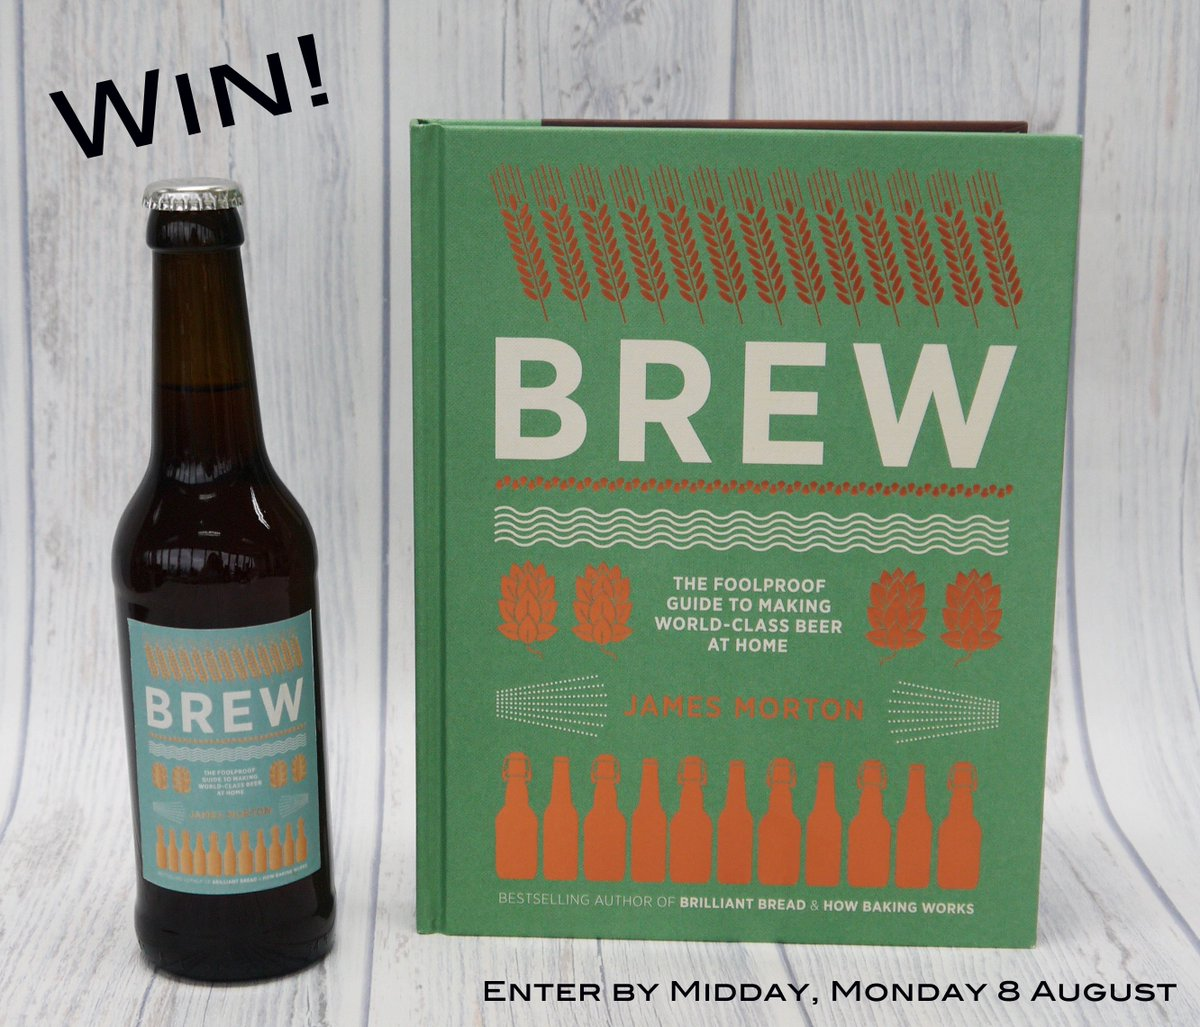 Happy #InternationalBeerDay! RT to enter our #competition to #win 6 beers & a copy of Brew! https://t.co/9cdw9rz5gu https://t.co/b2MP4cW1Iw